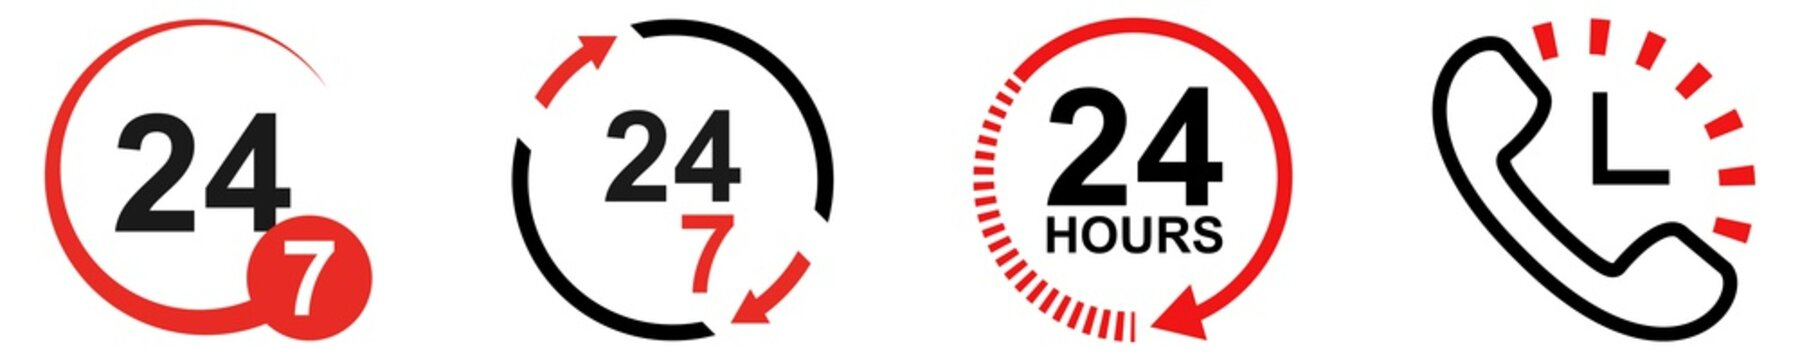 24/7 work hours set. Isolated 24 7 symbol on white background. Phone icon with clock sign. Open hours in a week. Customer support service. Twenty four seven vector illustration. EPS 10.